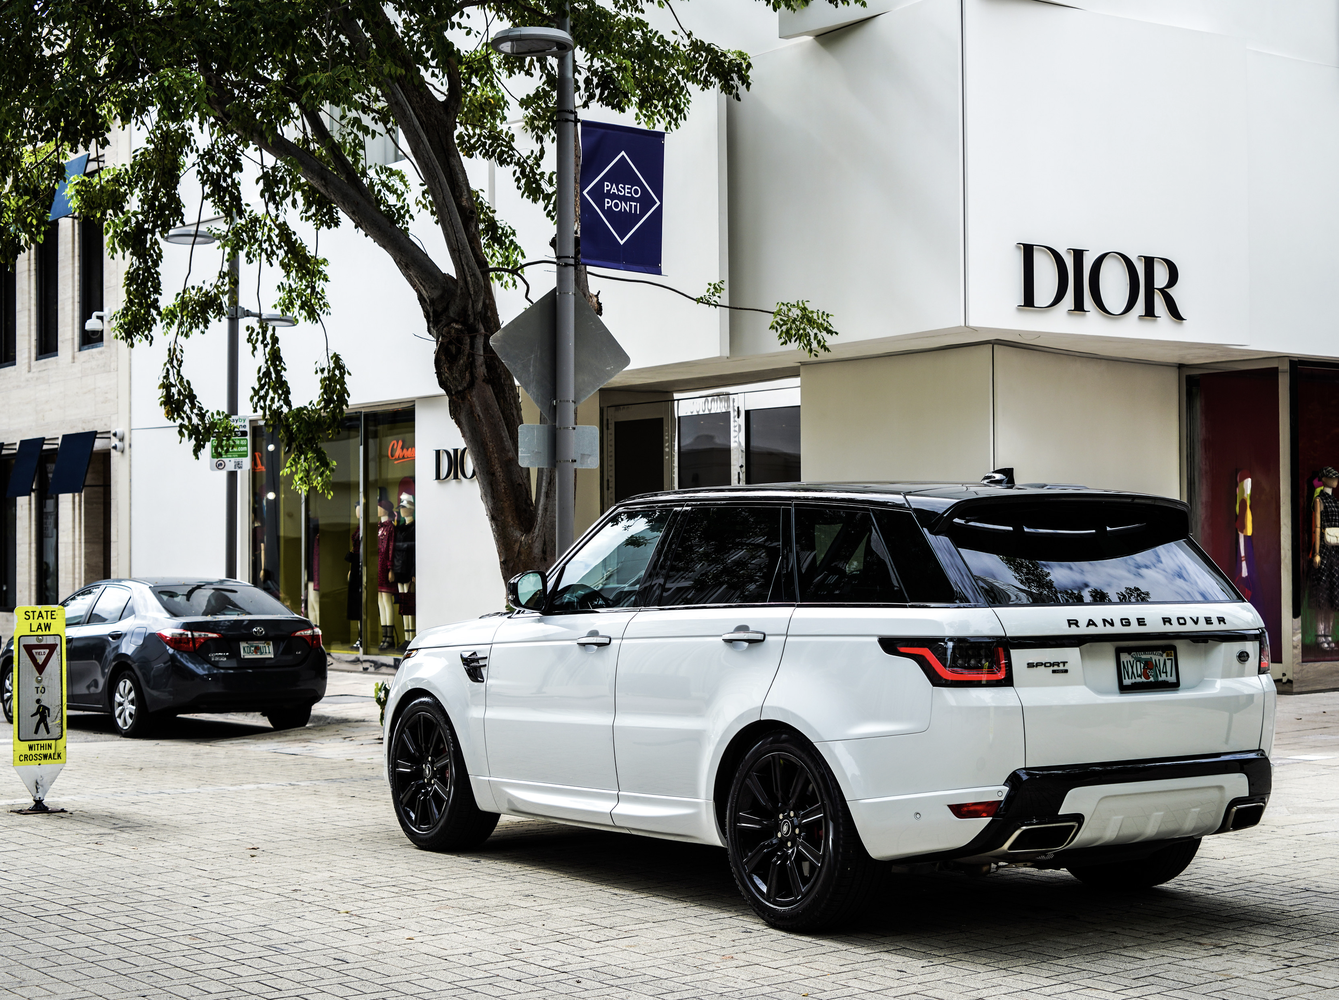 Image #1 of our  Range Rover Sport 22 White    In Miami Fort Lauderdale Palm Beach South Florida